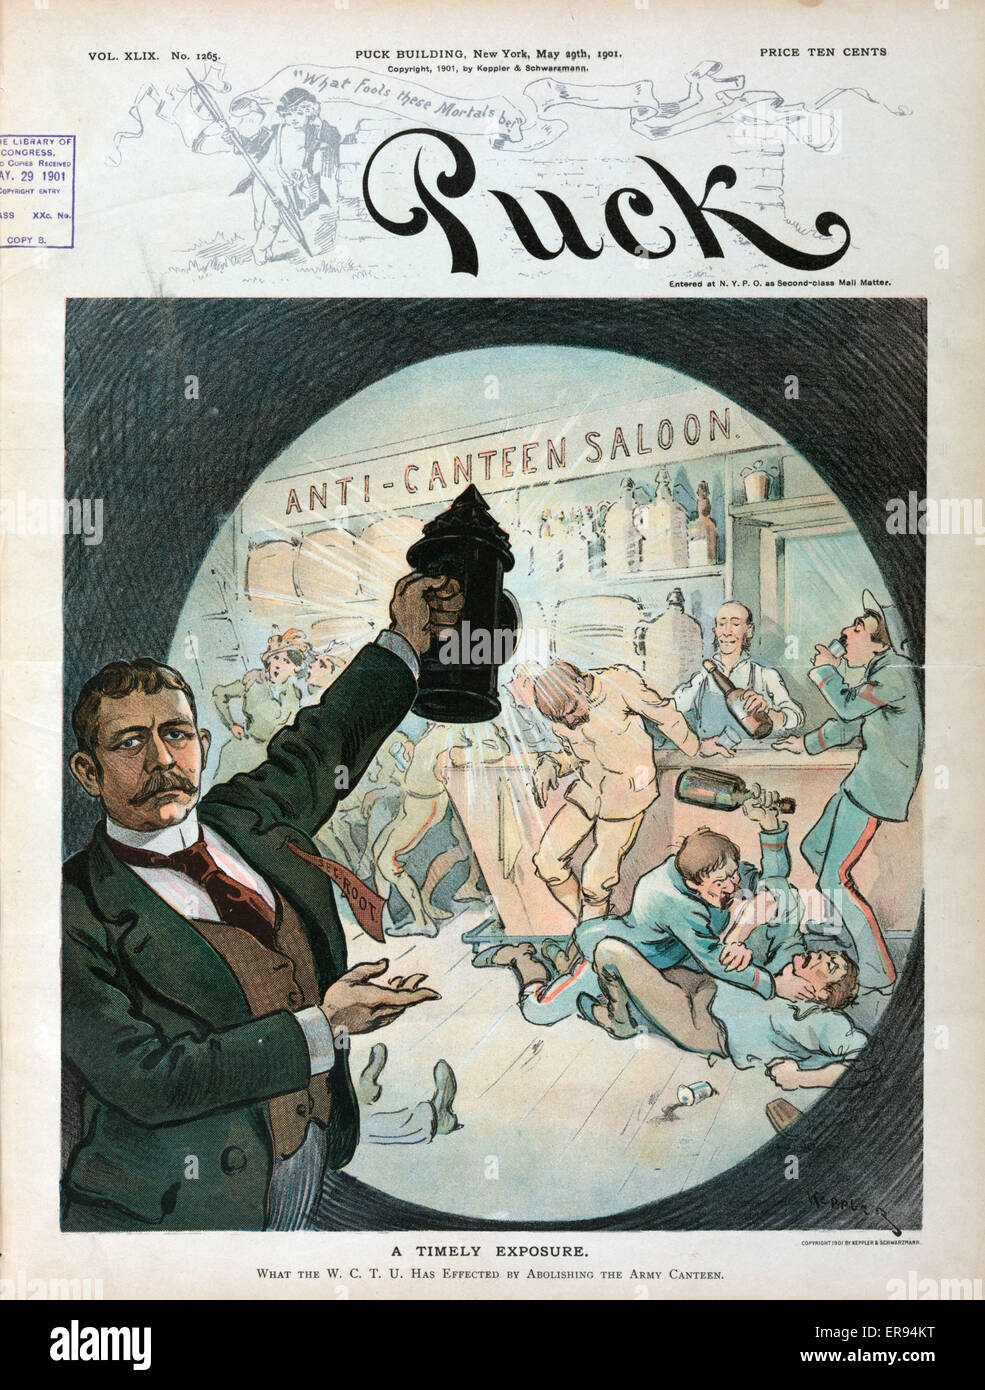 A timely exposure. Illustration shows Secretary of War Elihu Root holding up a lantern to illuminate a scene in - Stock Image